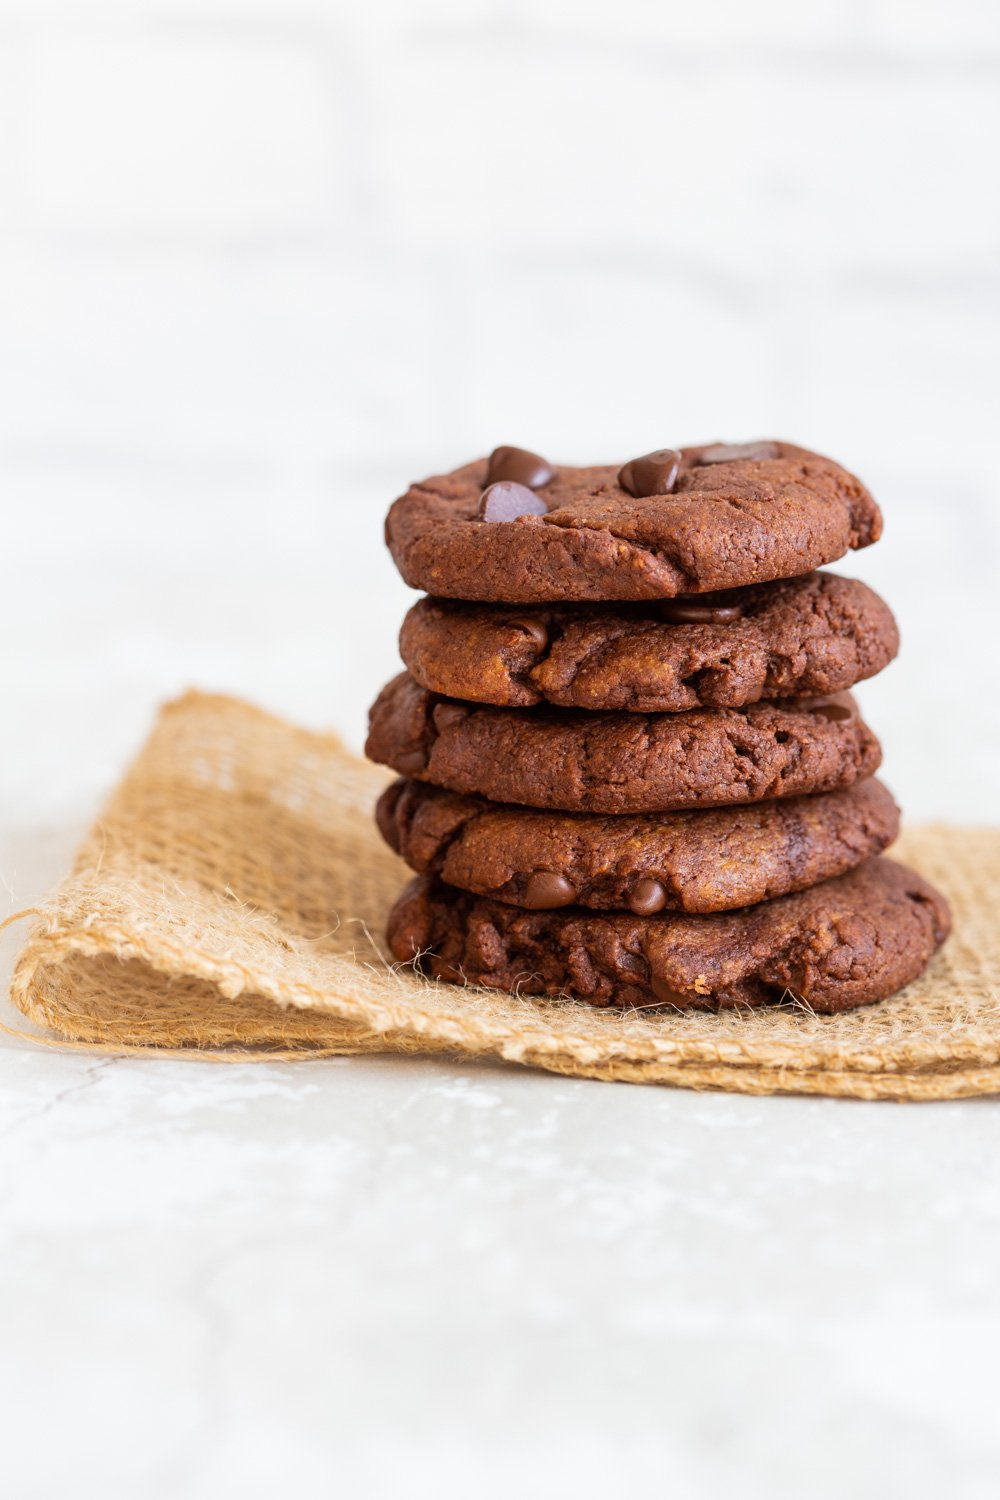 Grainfree Vegan Chocolate Tahini Cookies on parchment lined baking tray